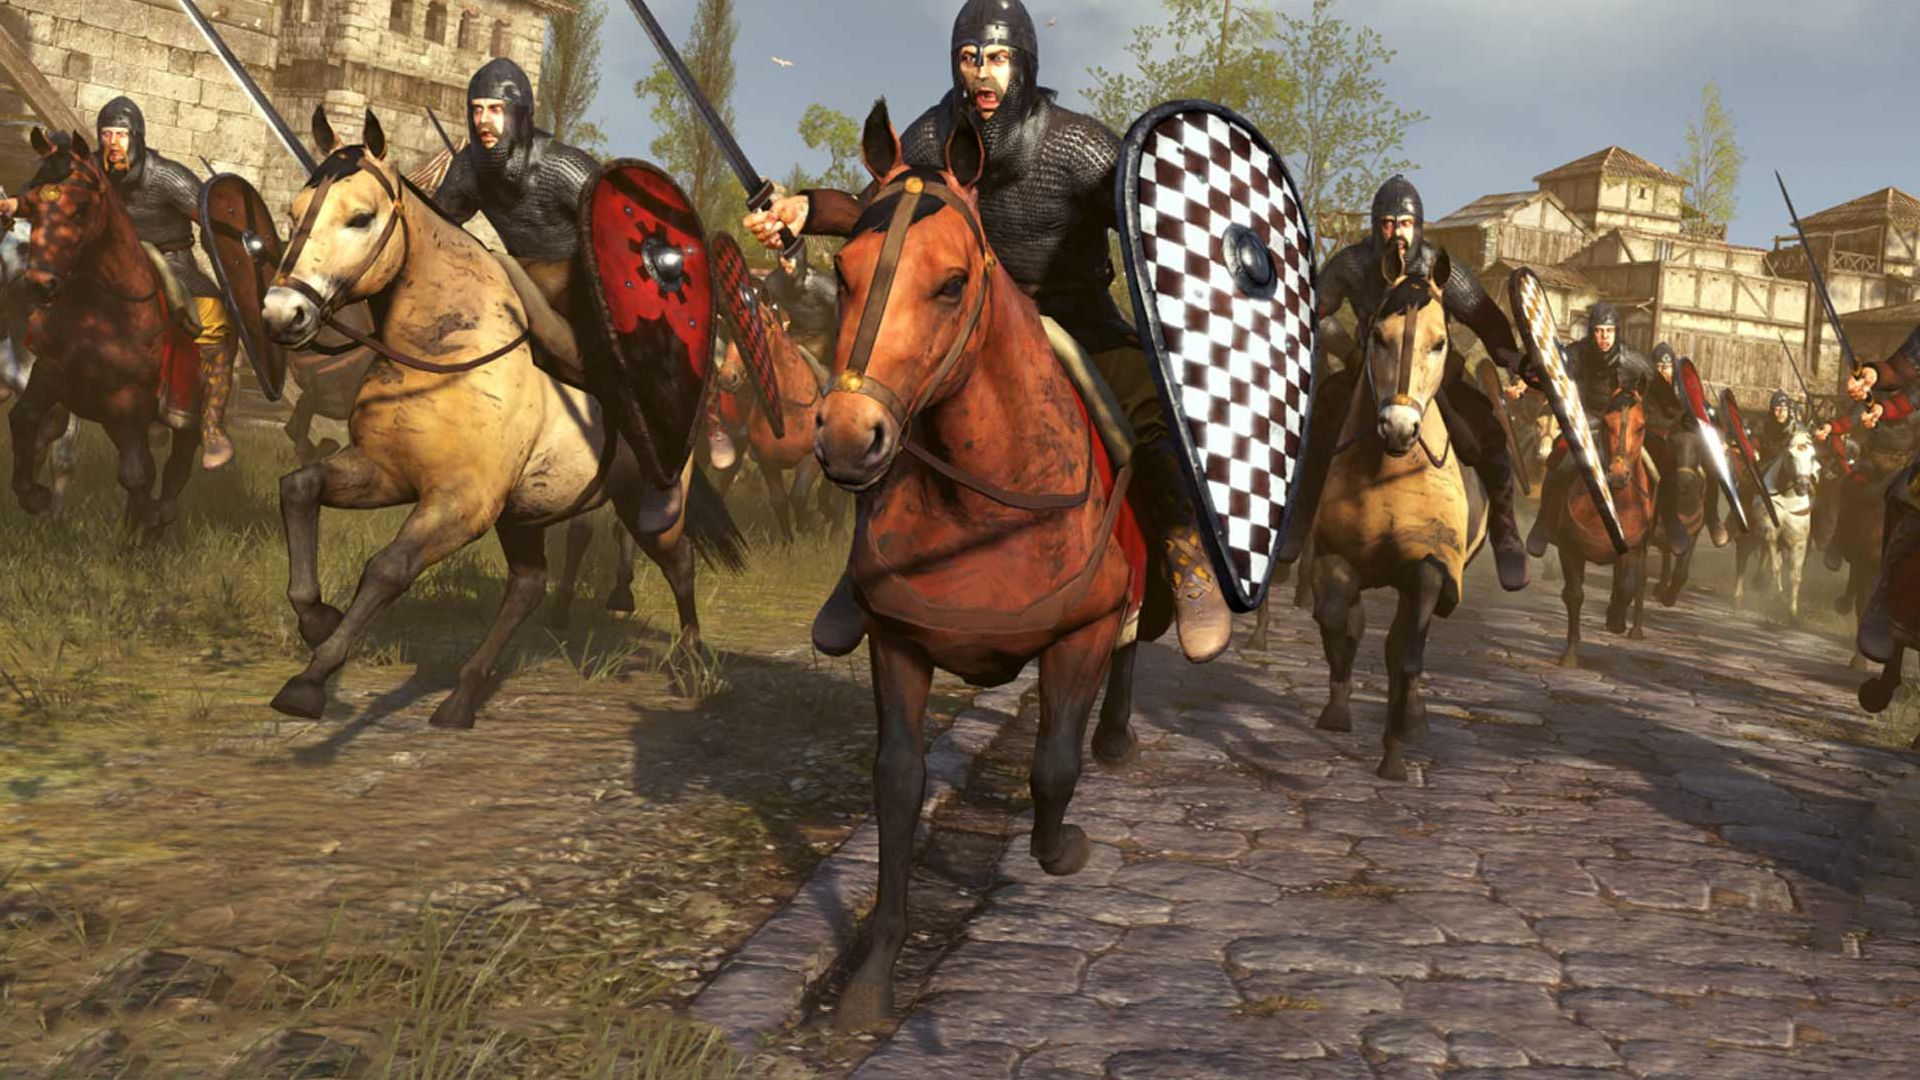 total-war-attila-age-of-charlemagne-campaign-pack-dlc-pc-steam-cd-key-satin-al-durmaplay.jpg